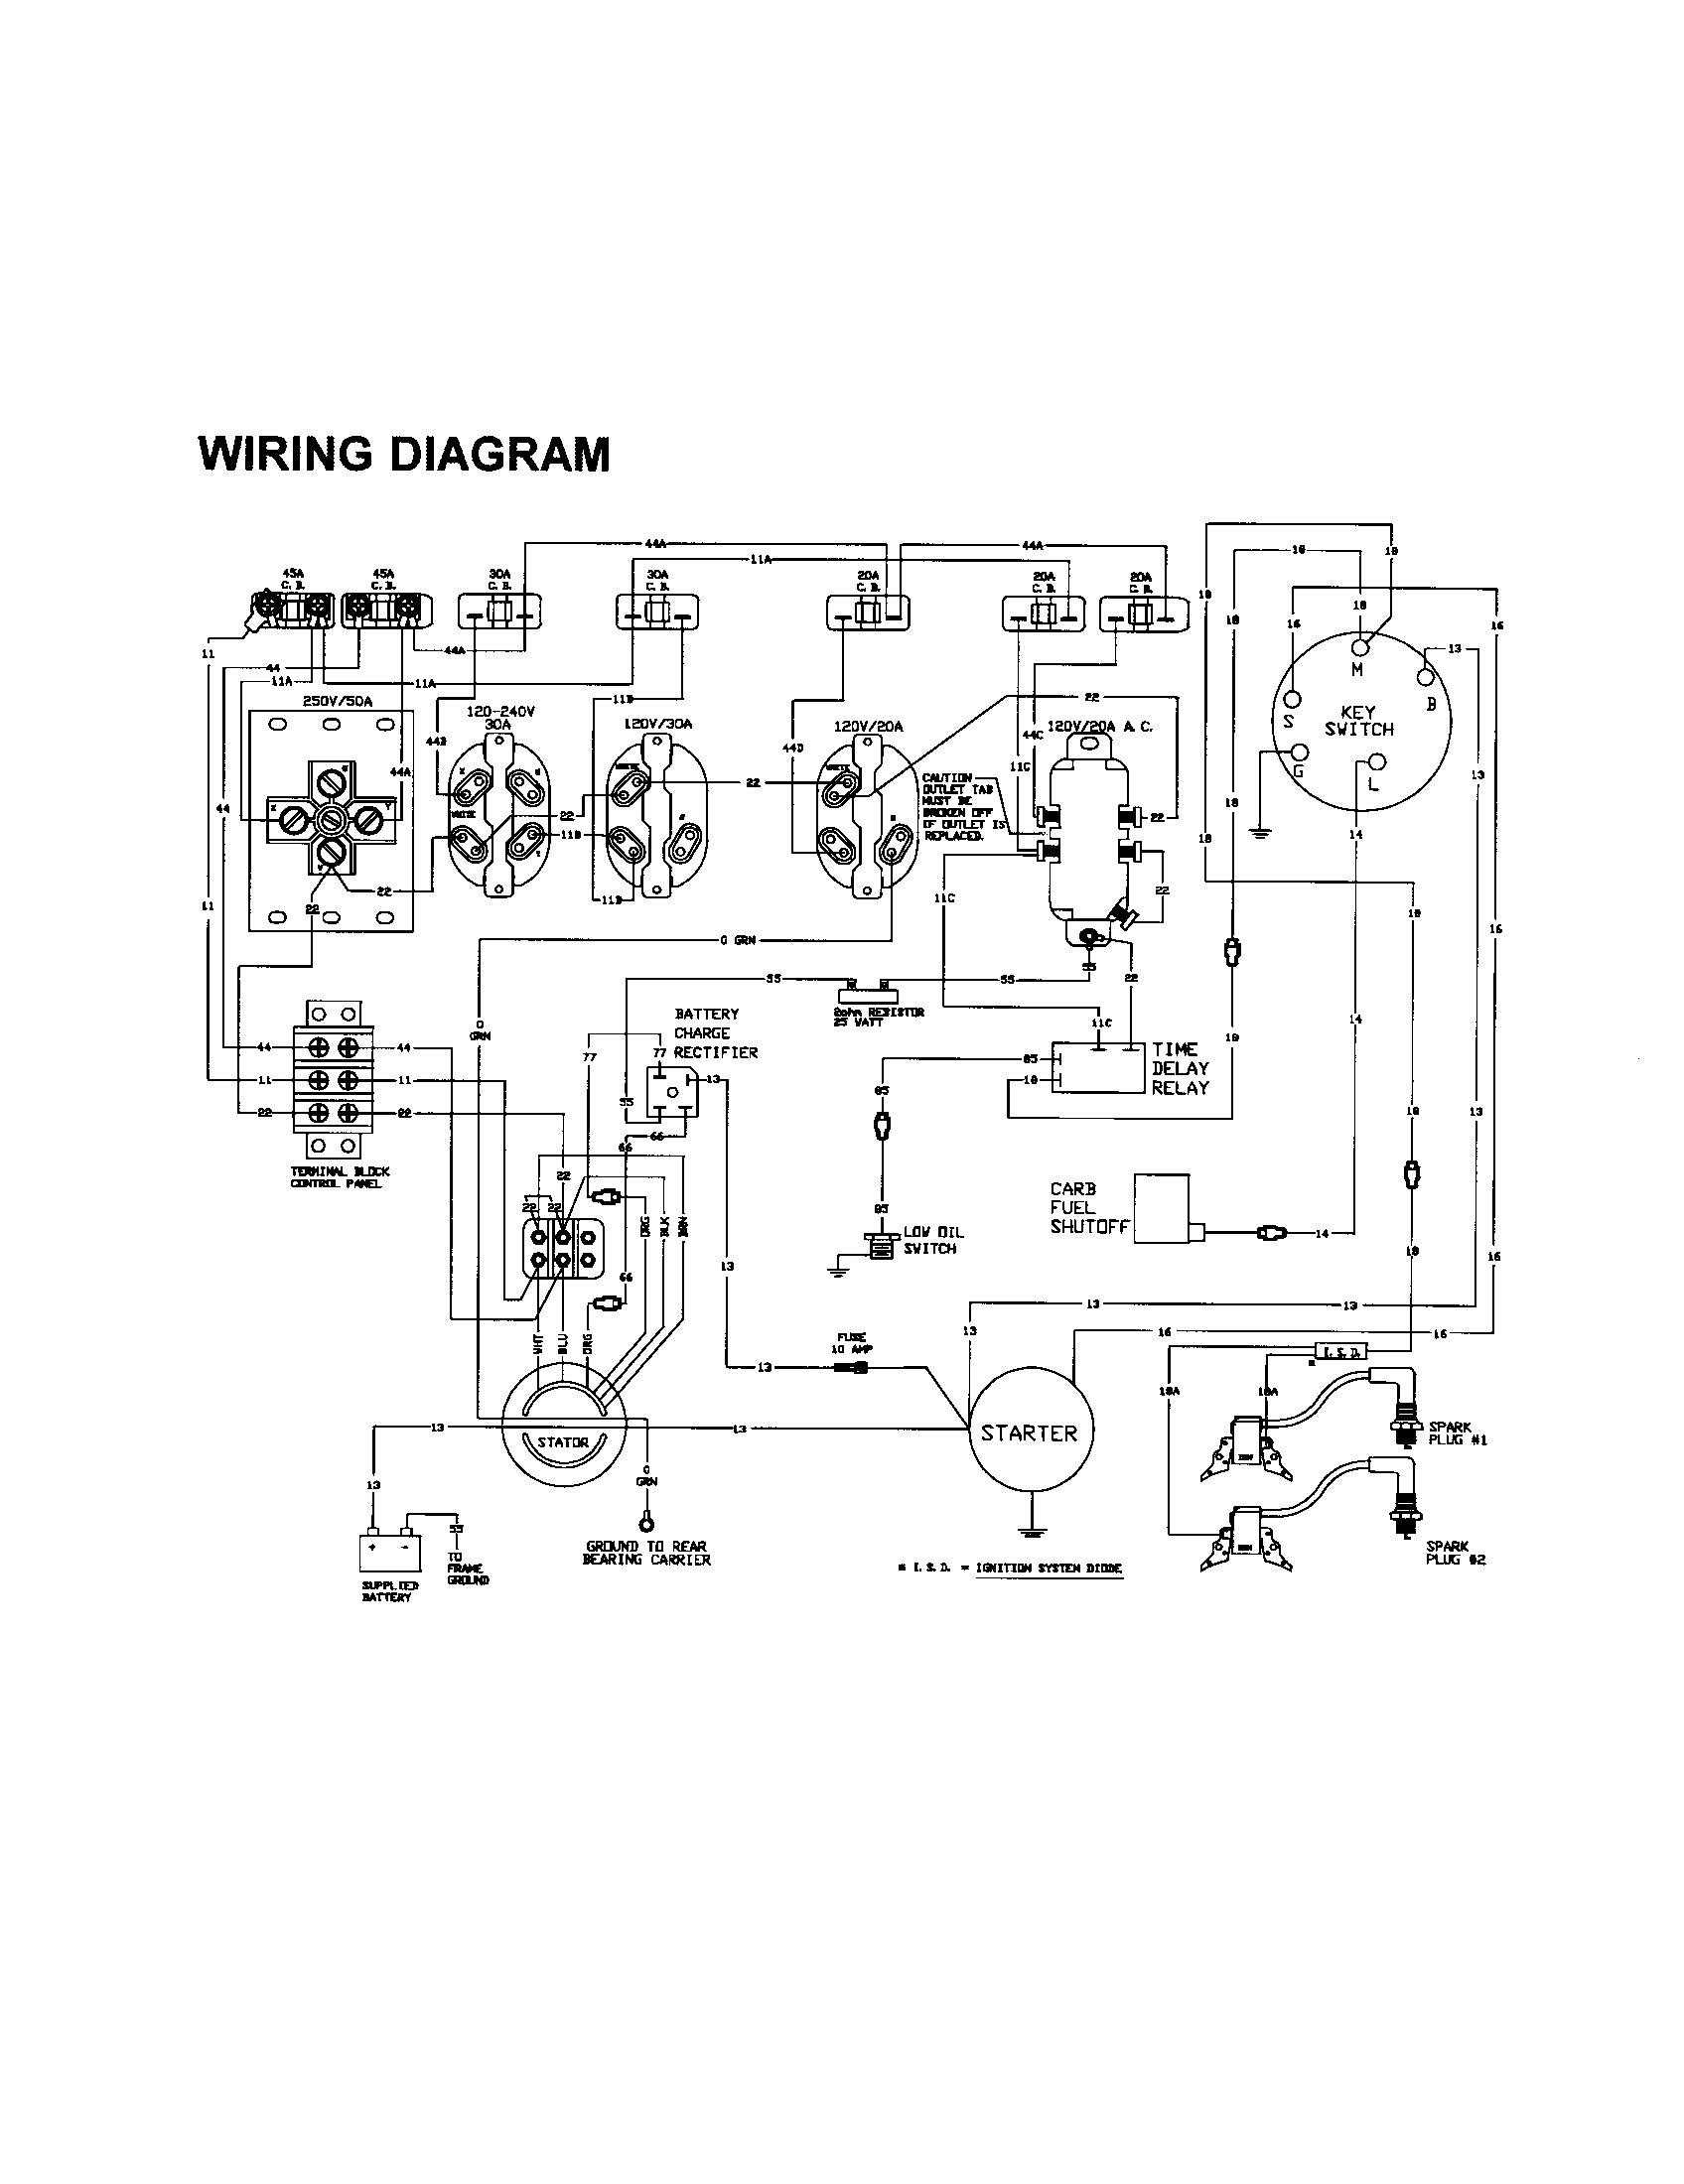 hight resolution of generac generator wiring schematic wiring diagram onlinegenerator generac wiring diagram simple wiring diagrams generac standby generator